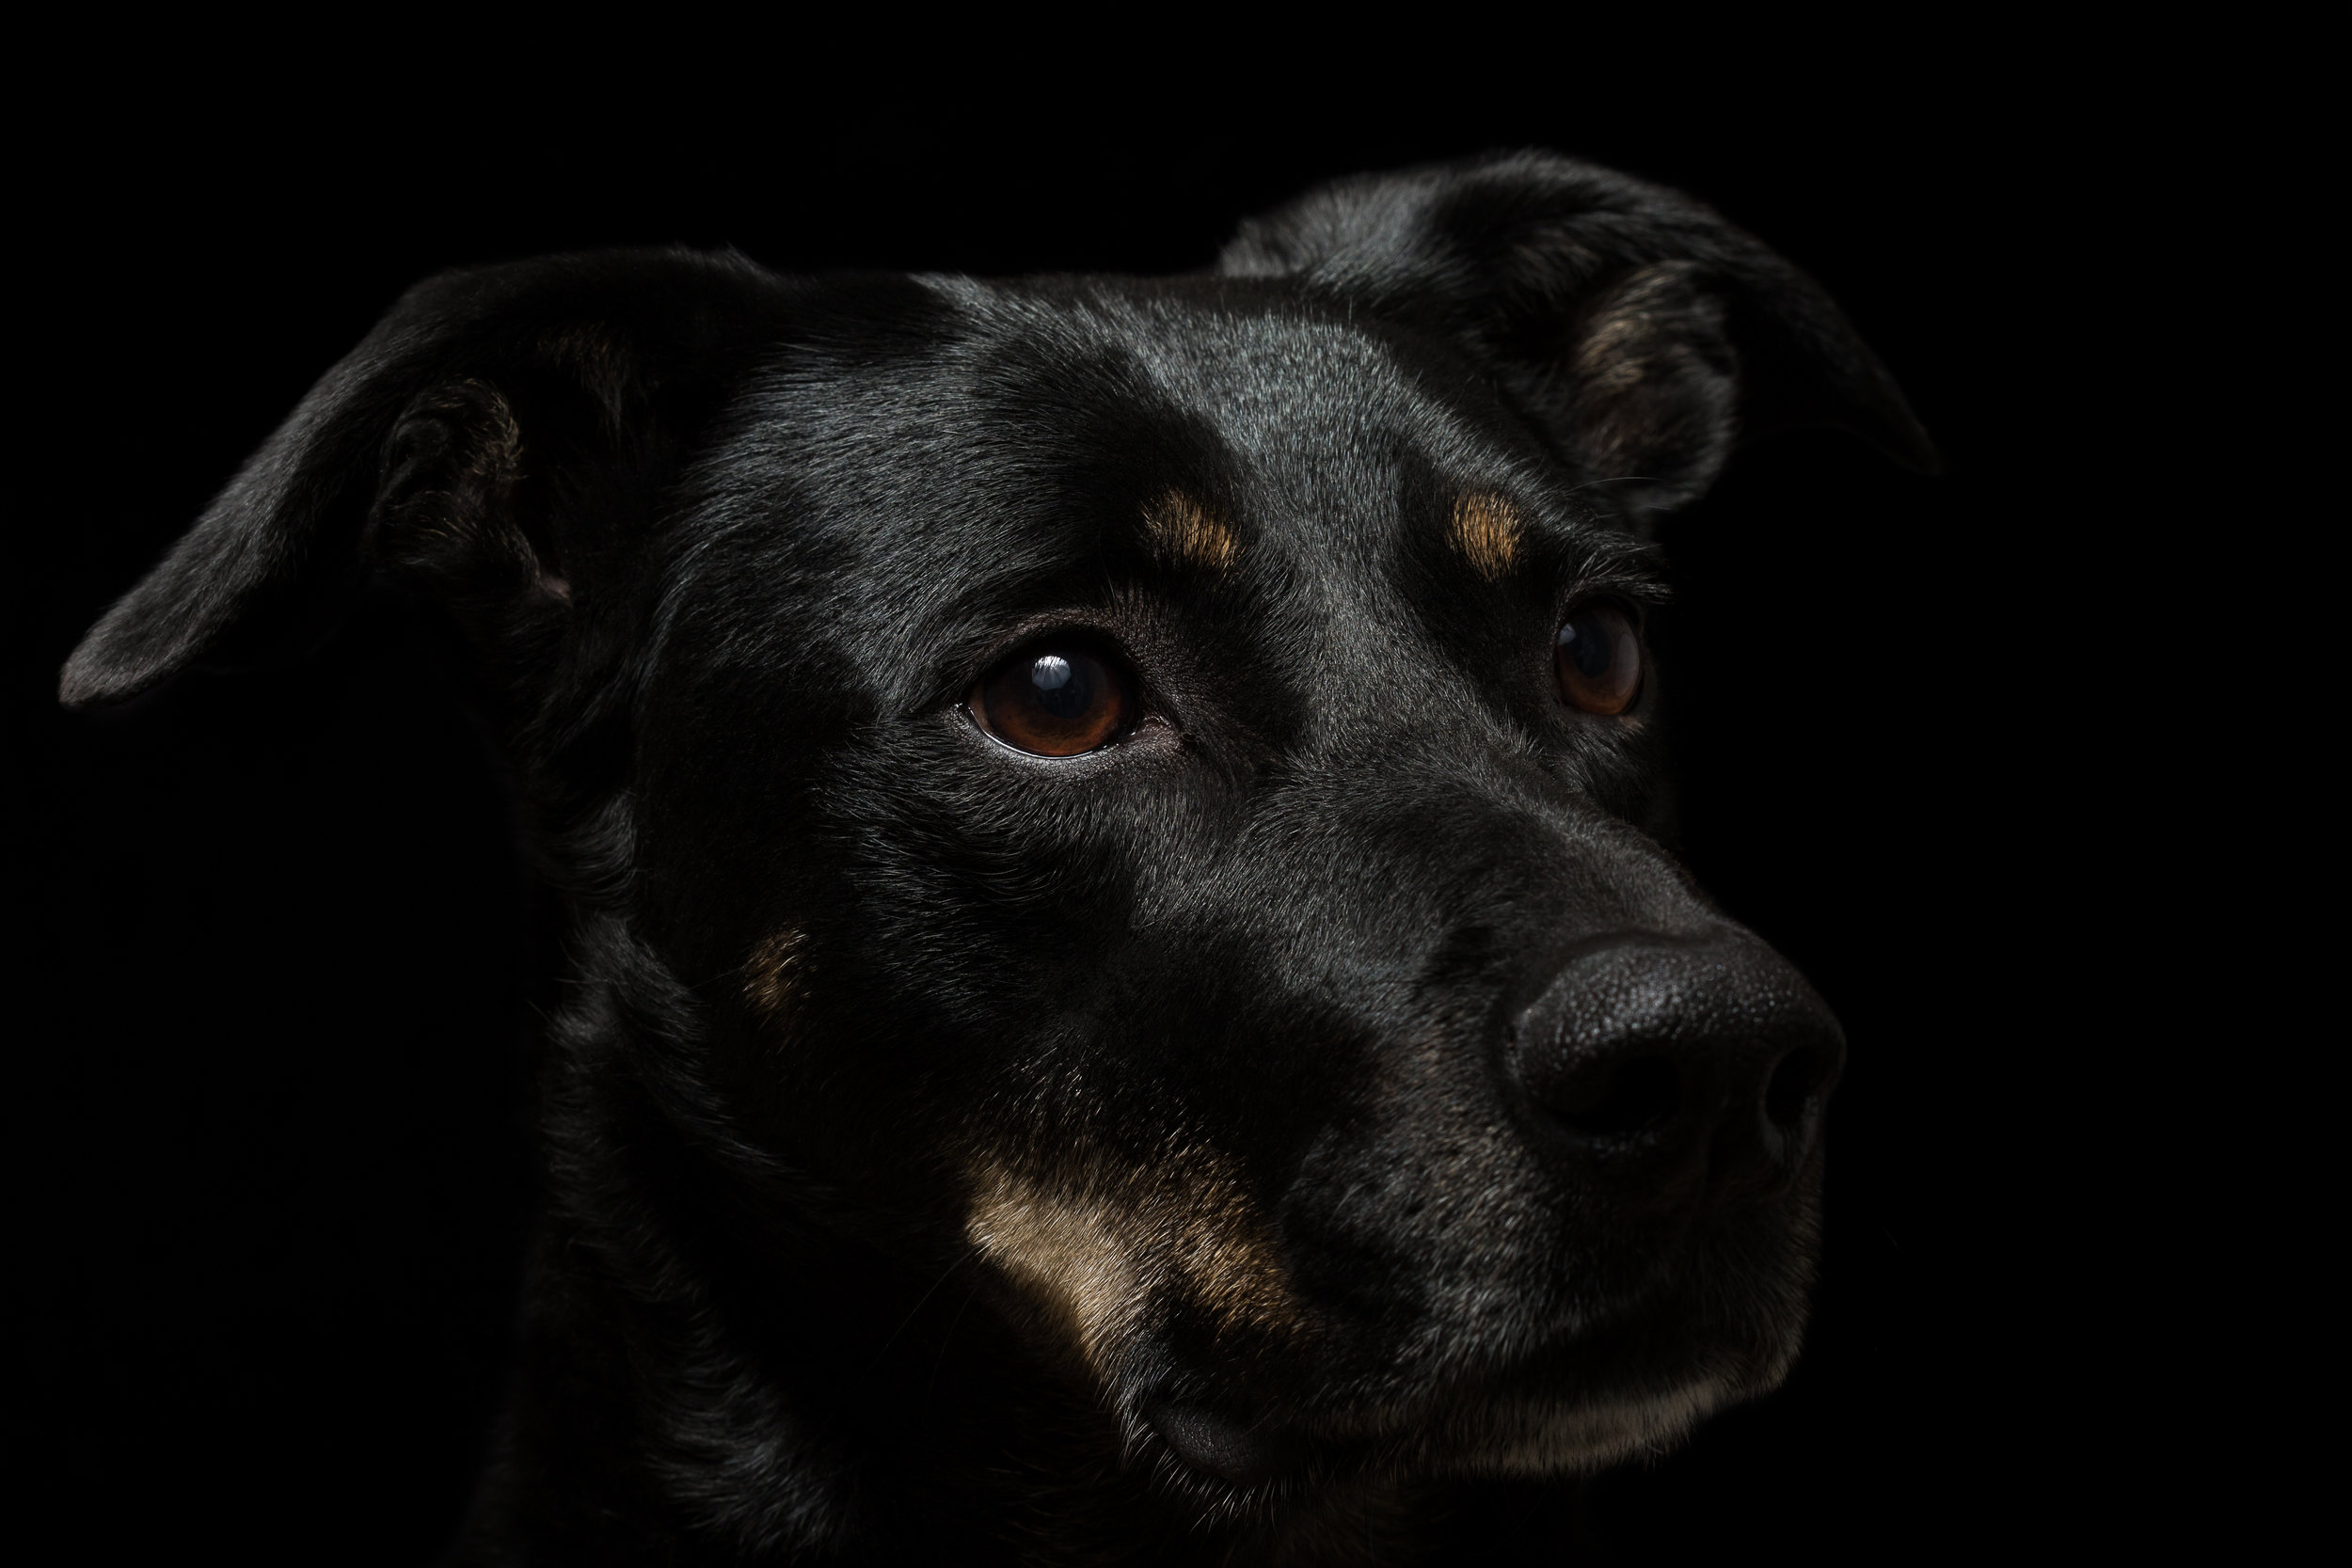 2016-01-16_Animali_49-Edit.jpg